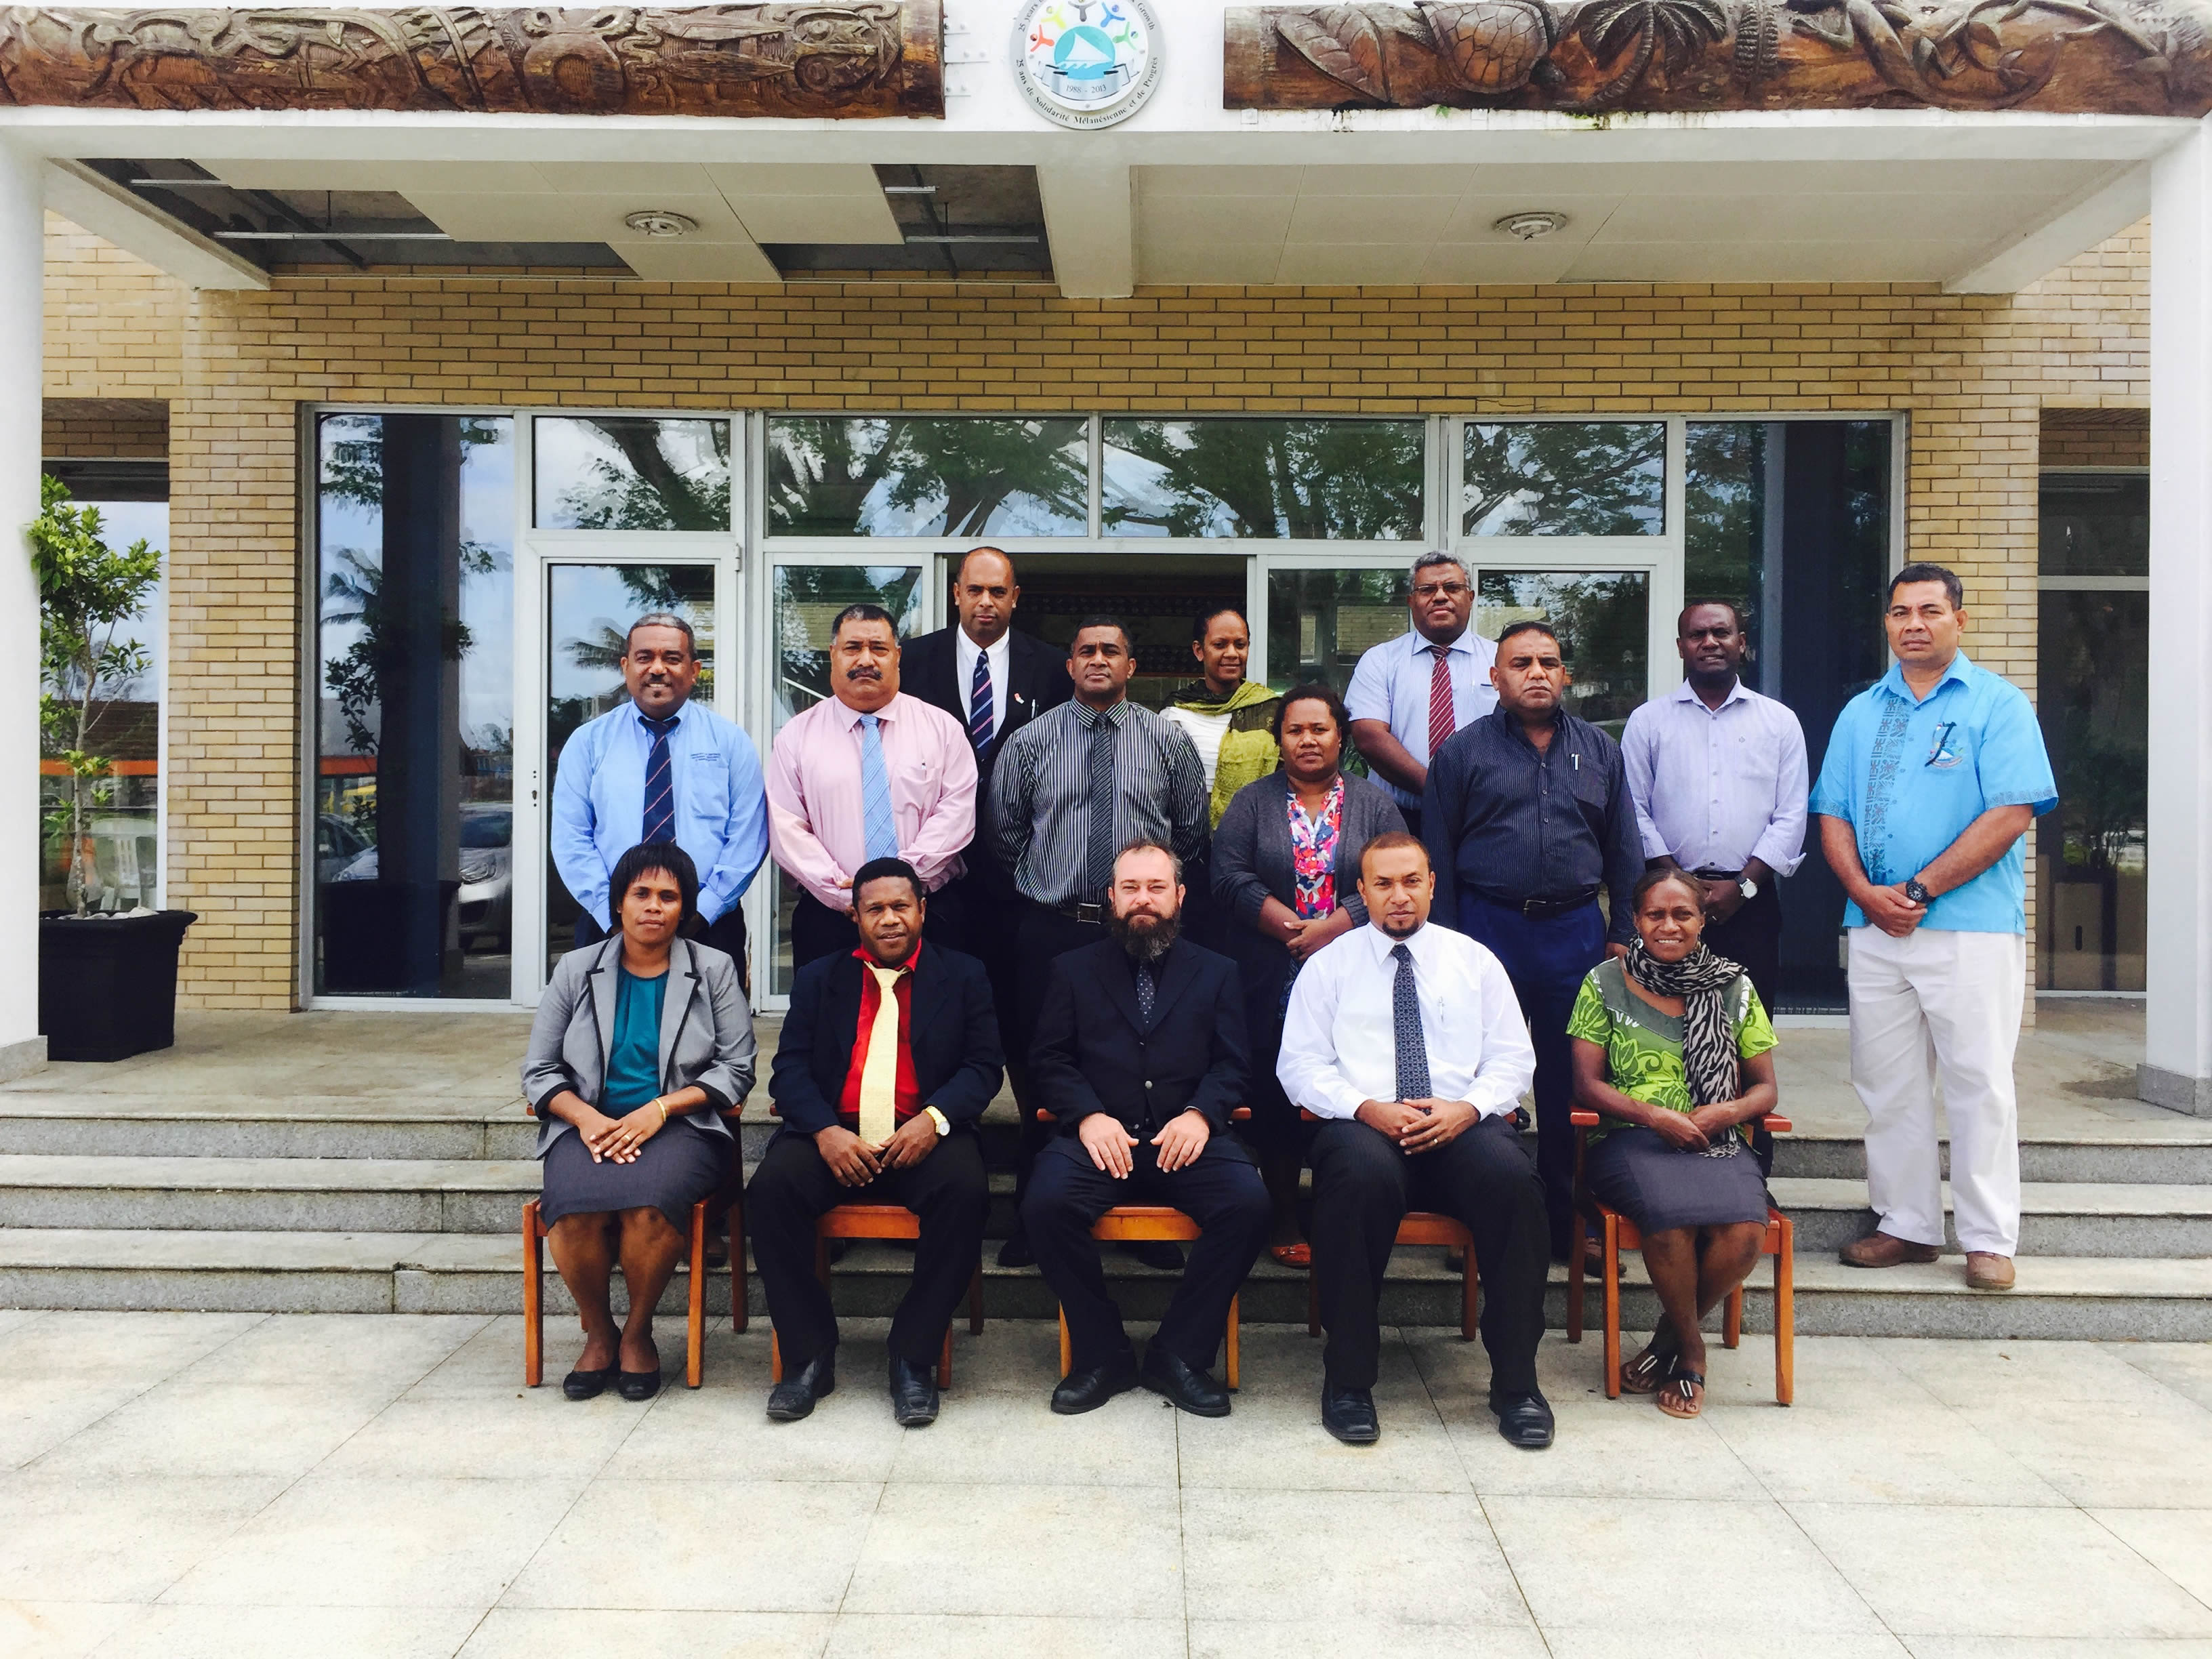 MSG Legal Experts meet to finalize key issues before MSG Leaders Summit